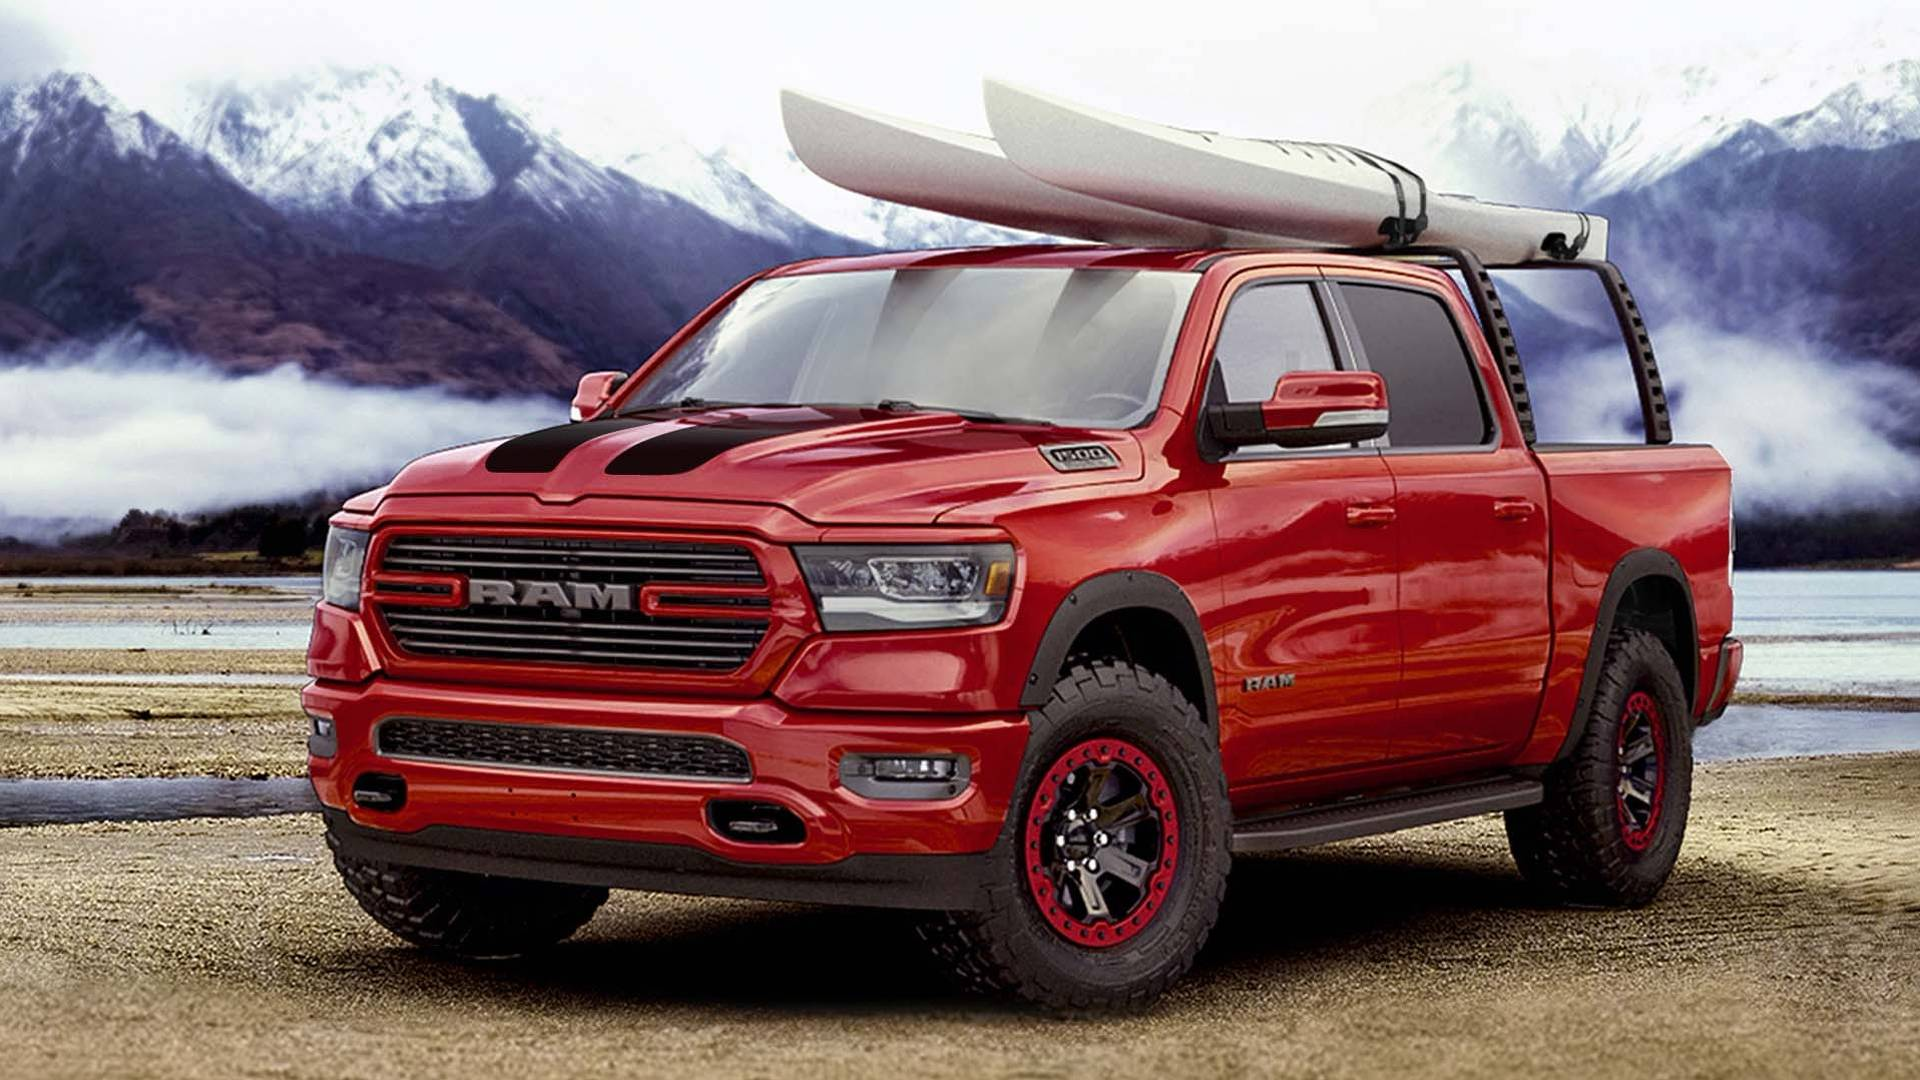 Ram 1500 Towing Capacity >> 2019 Ram 1500 Gets The Mopar Treatment In Chicago, Configurator Goes Online - autoevolution